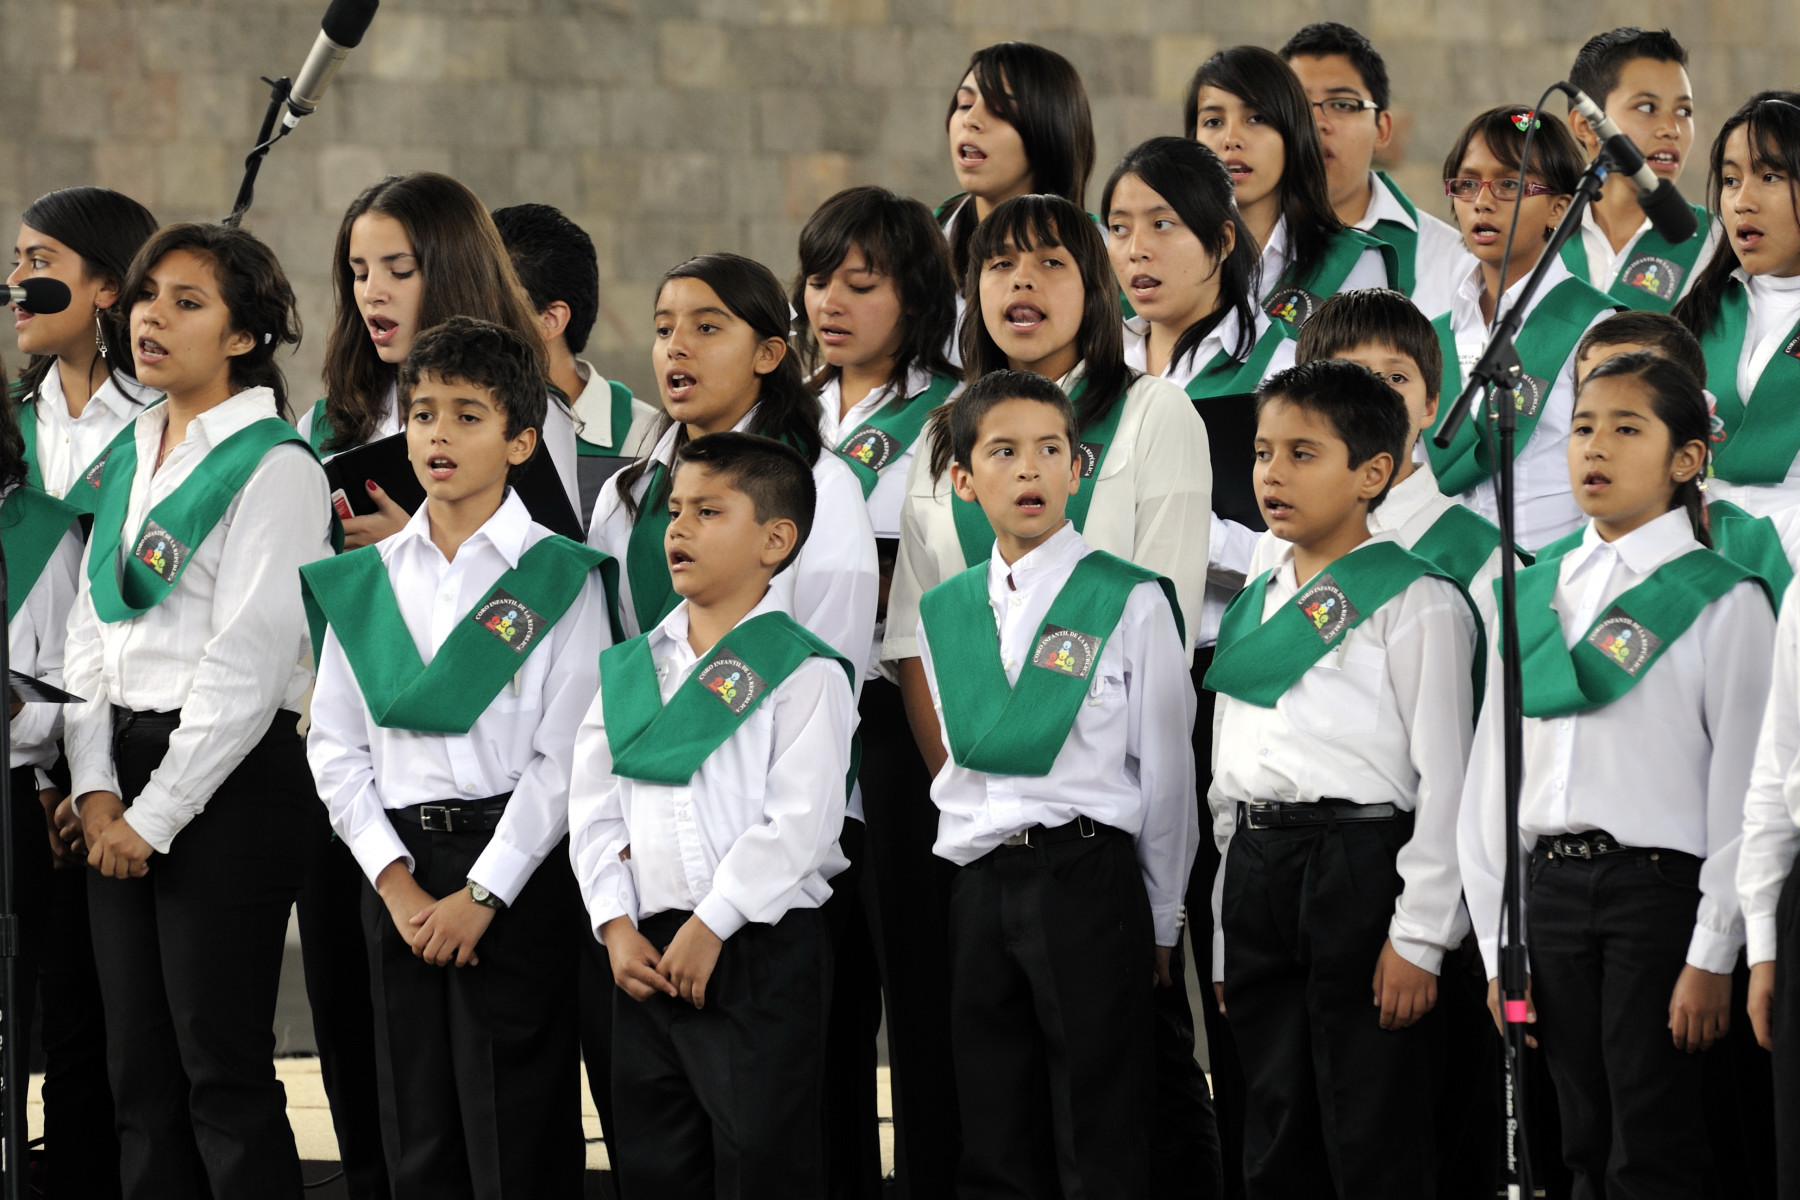 A youth choir sang national songs.